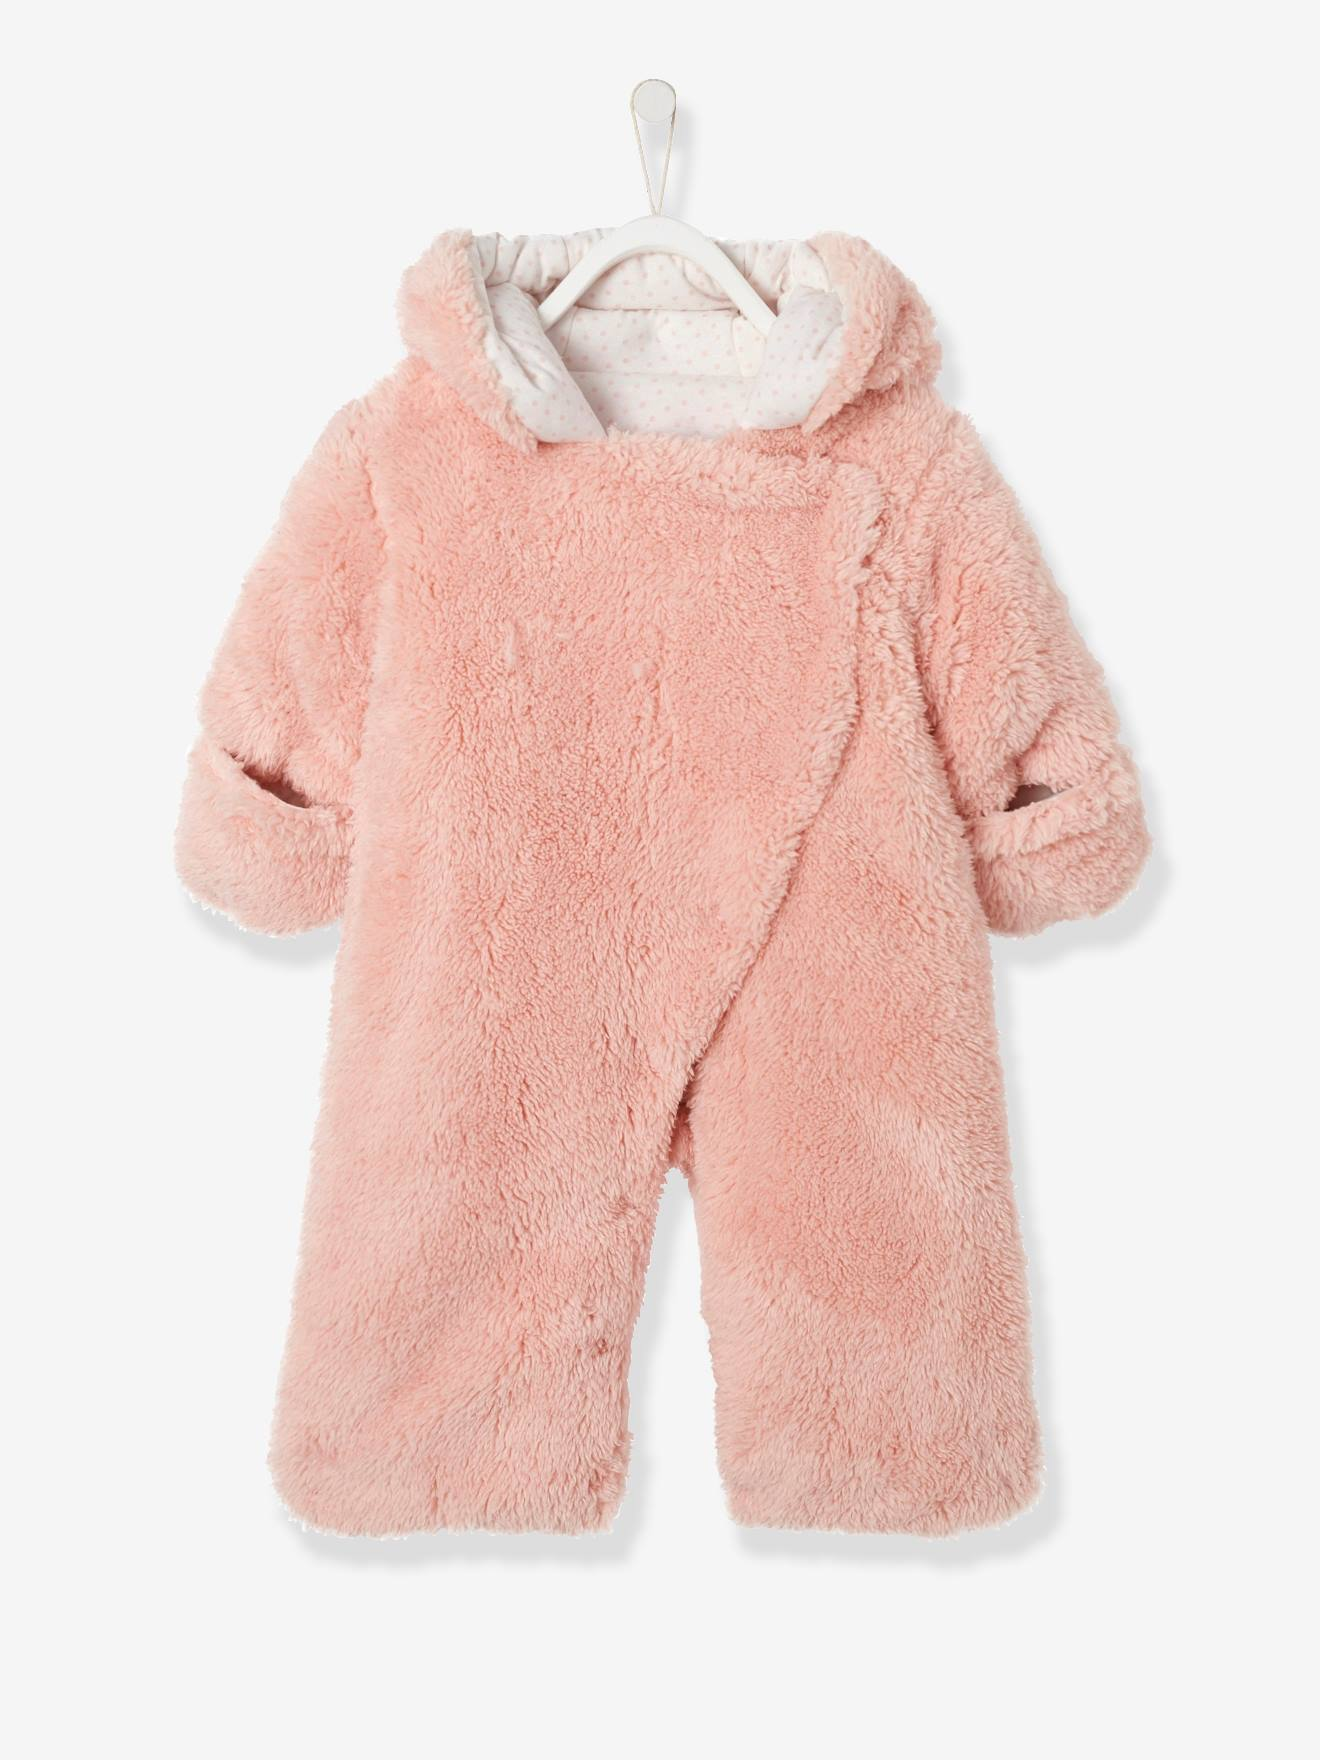 416af7275e9d Newborn Faux Fur Convertible Snowsuit - pink light solid